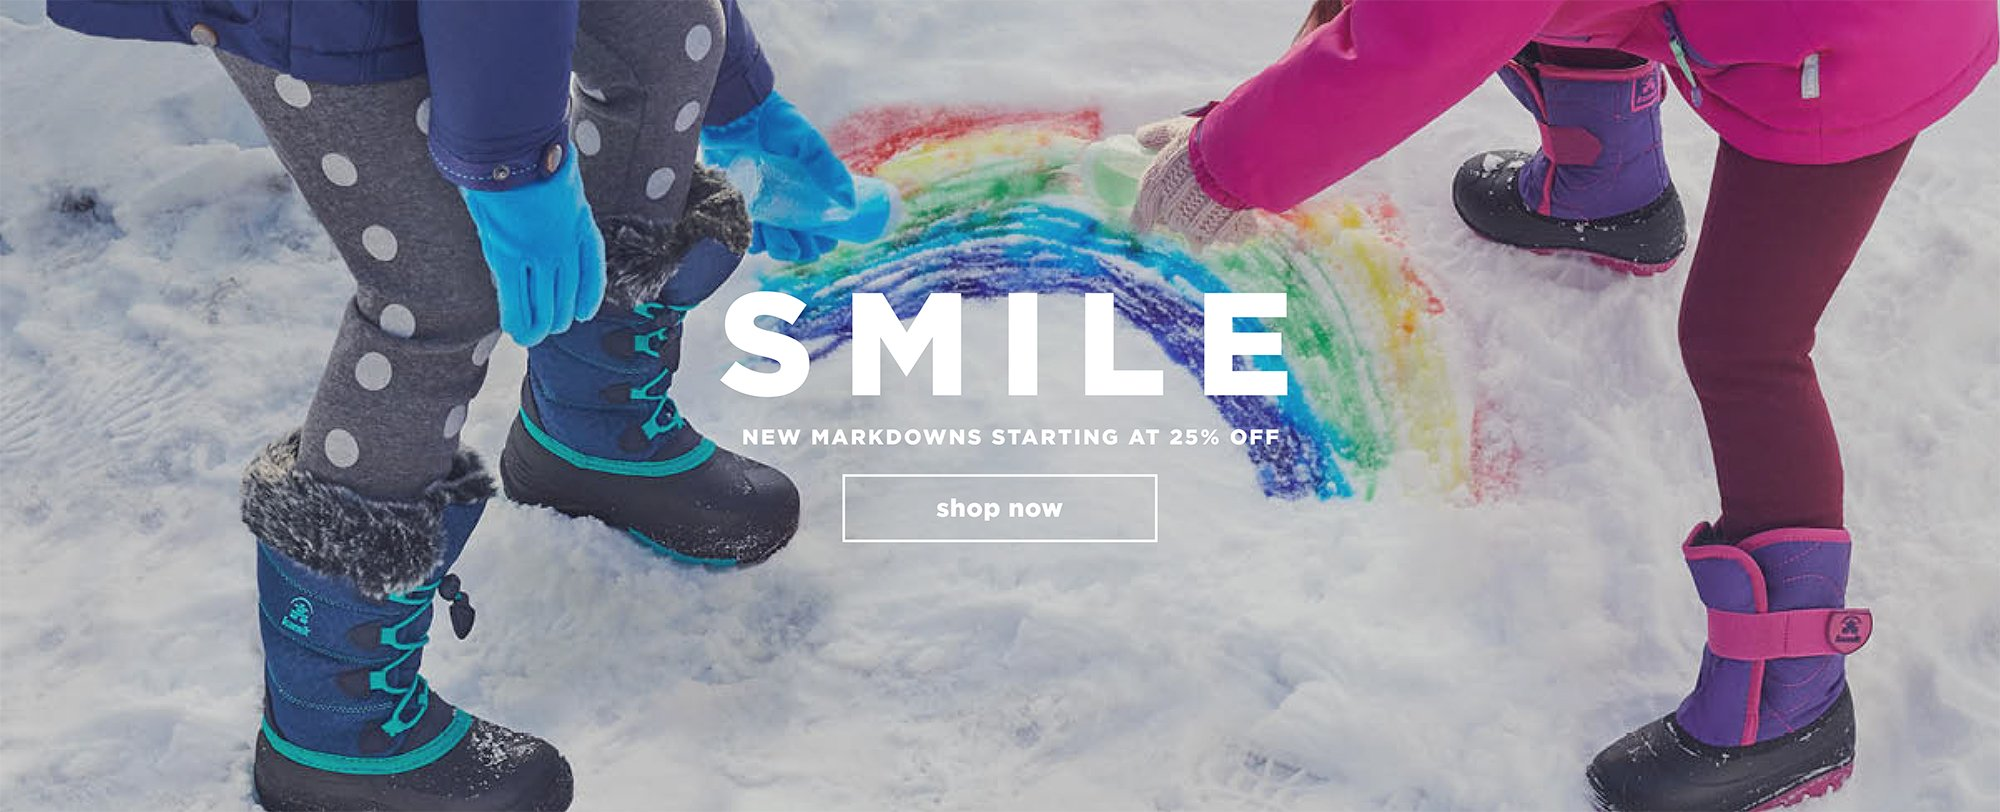 Smile 25% off